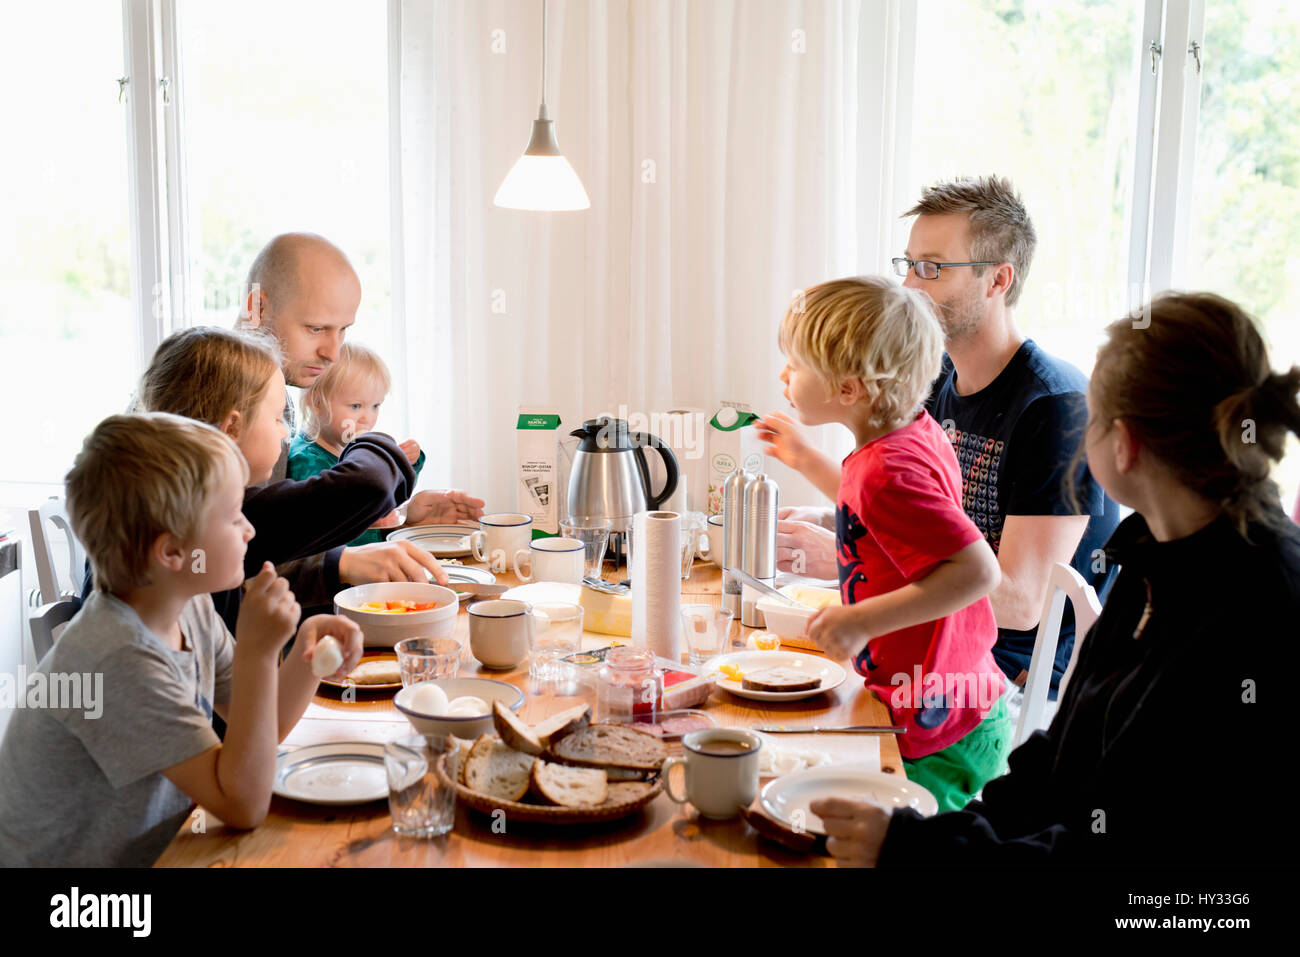 Sweden, Family with children (2-3, 4-5,10-11,16-17) eating breakfast at table - Stock Image